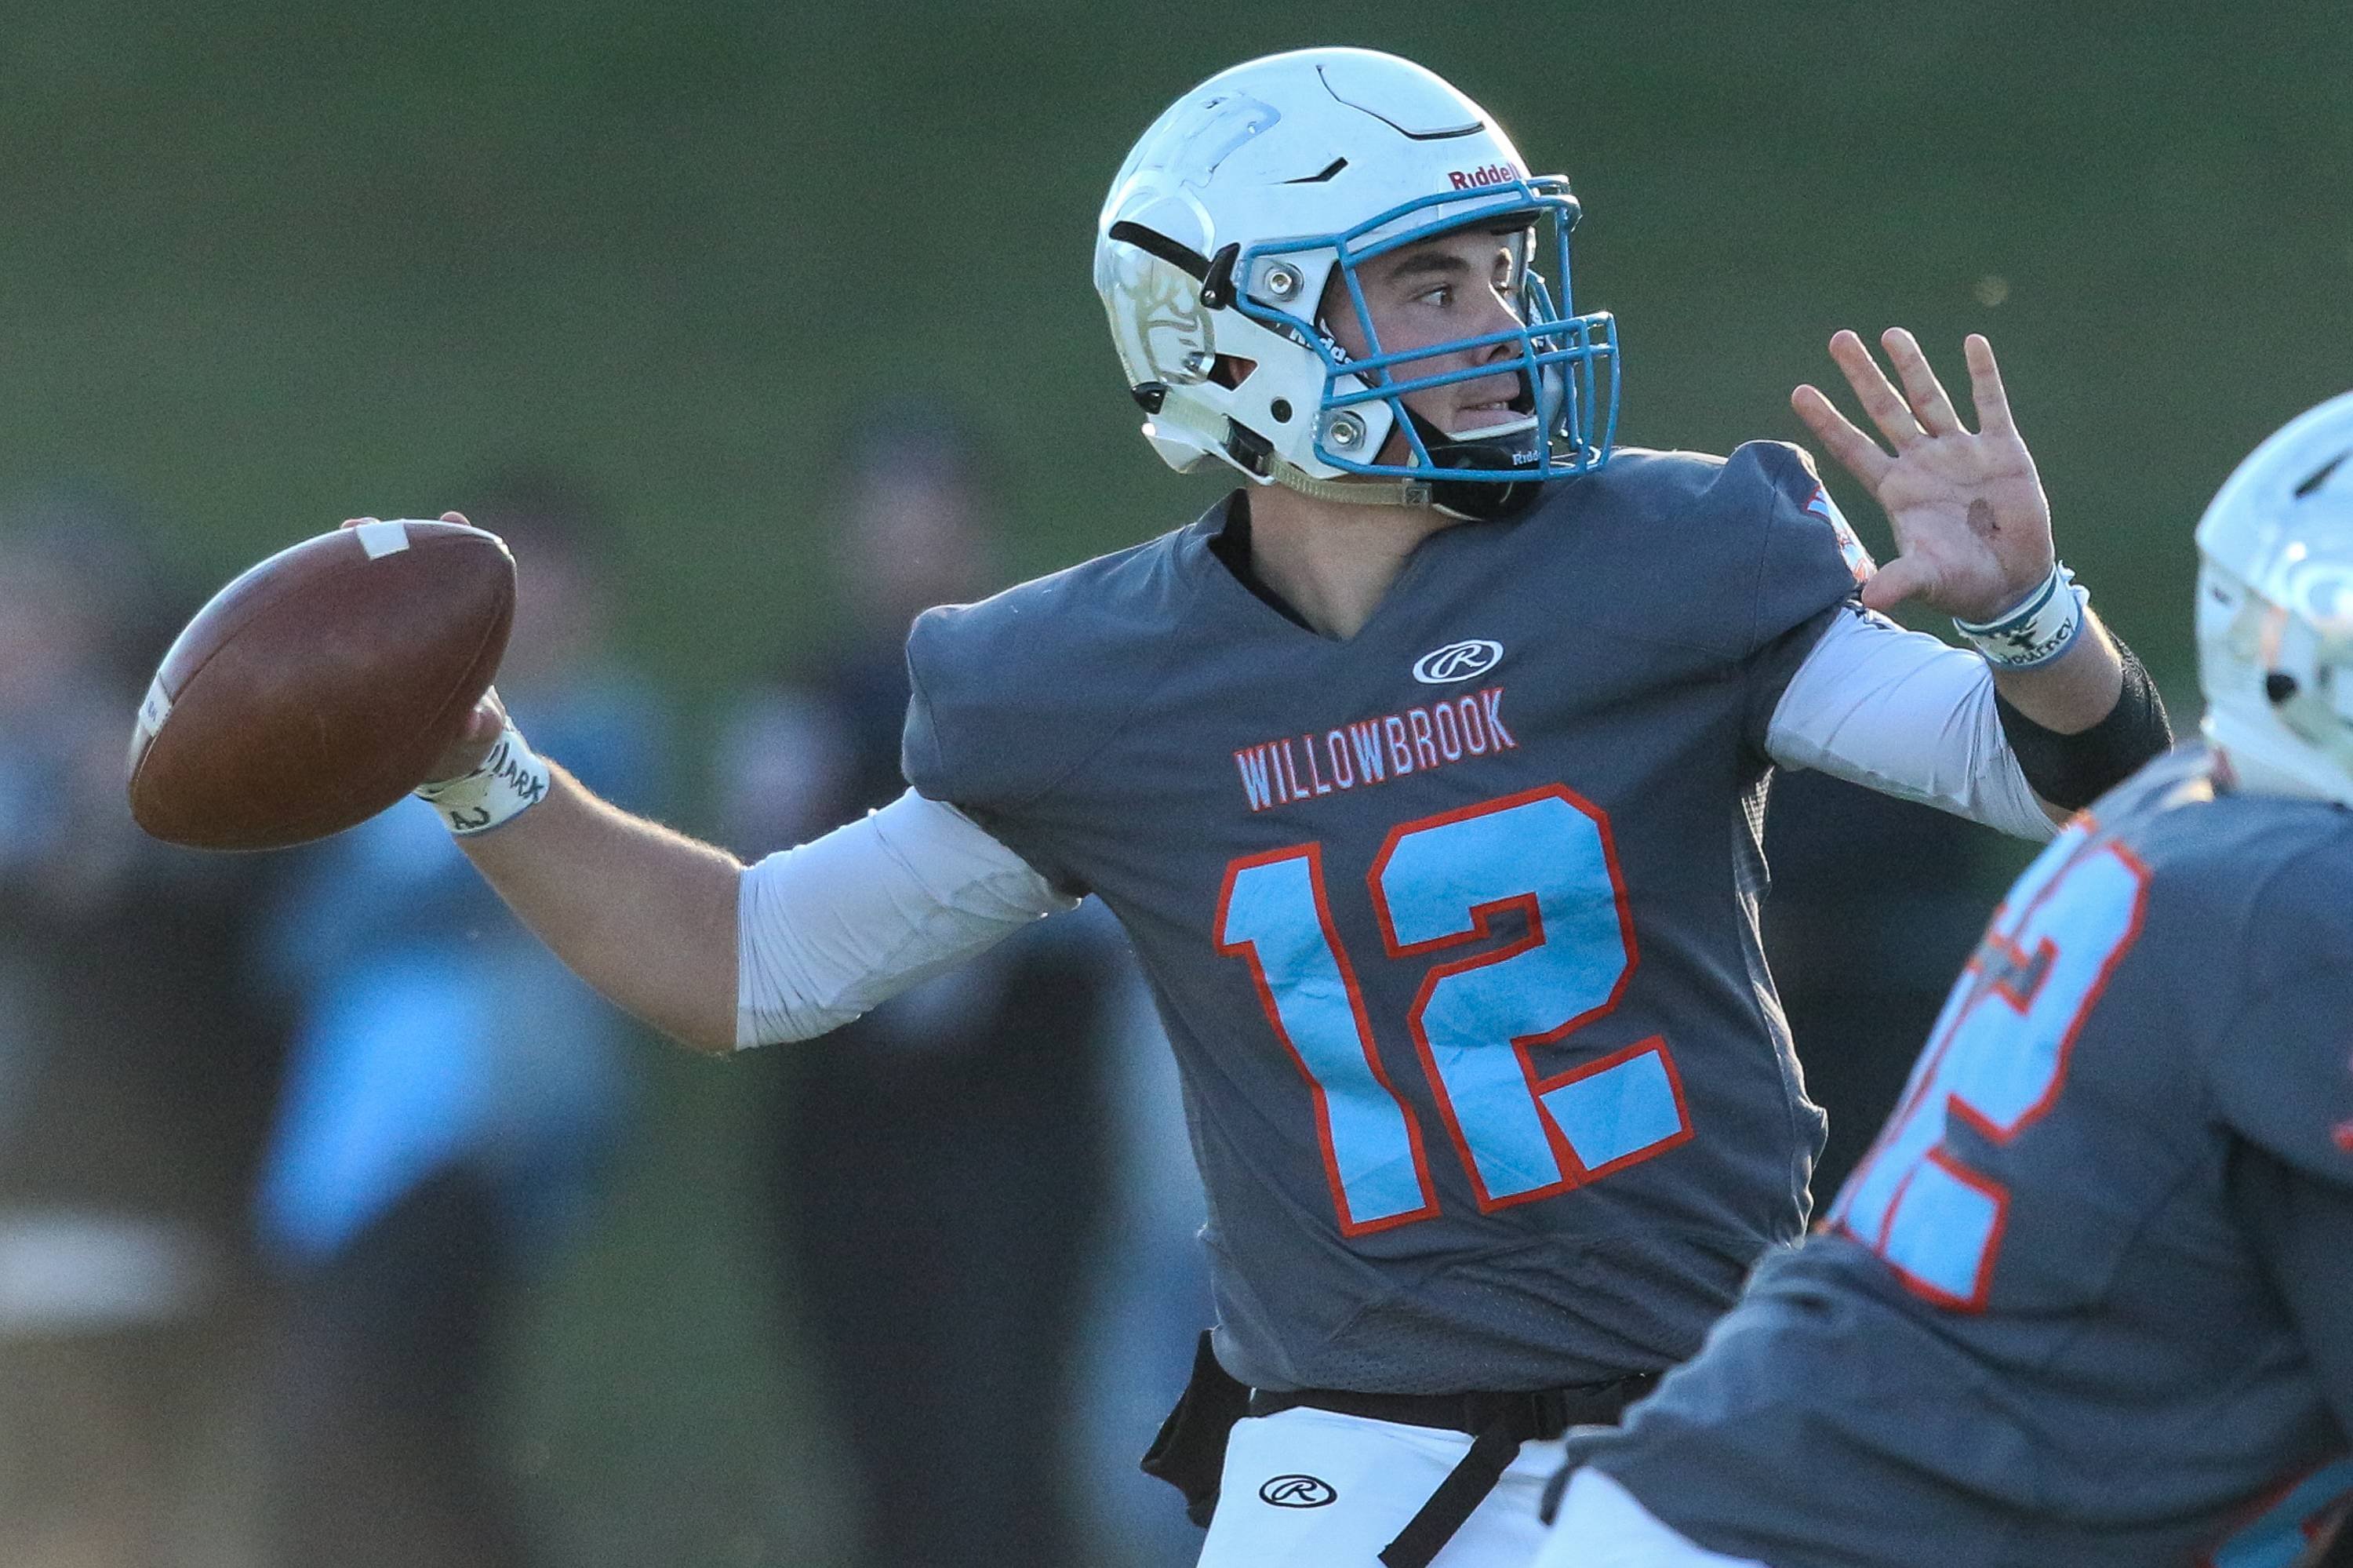 Willowbrook quarterback  M.J. Ranieri (12) throws a pass against East St. Louis during a 7A quarterfinal state playoff game at Willowbrook High School in Villa Park, IL on Saturday, November 12, 2016